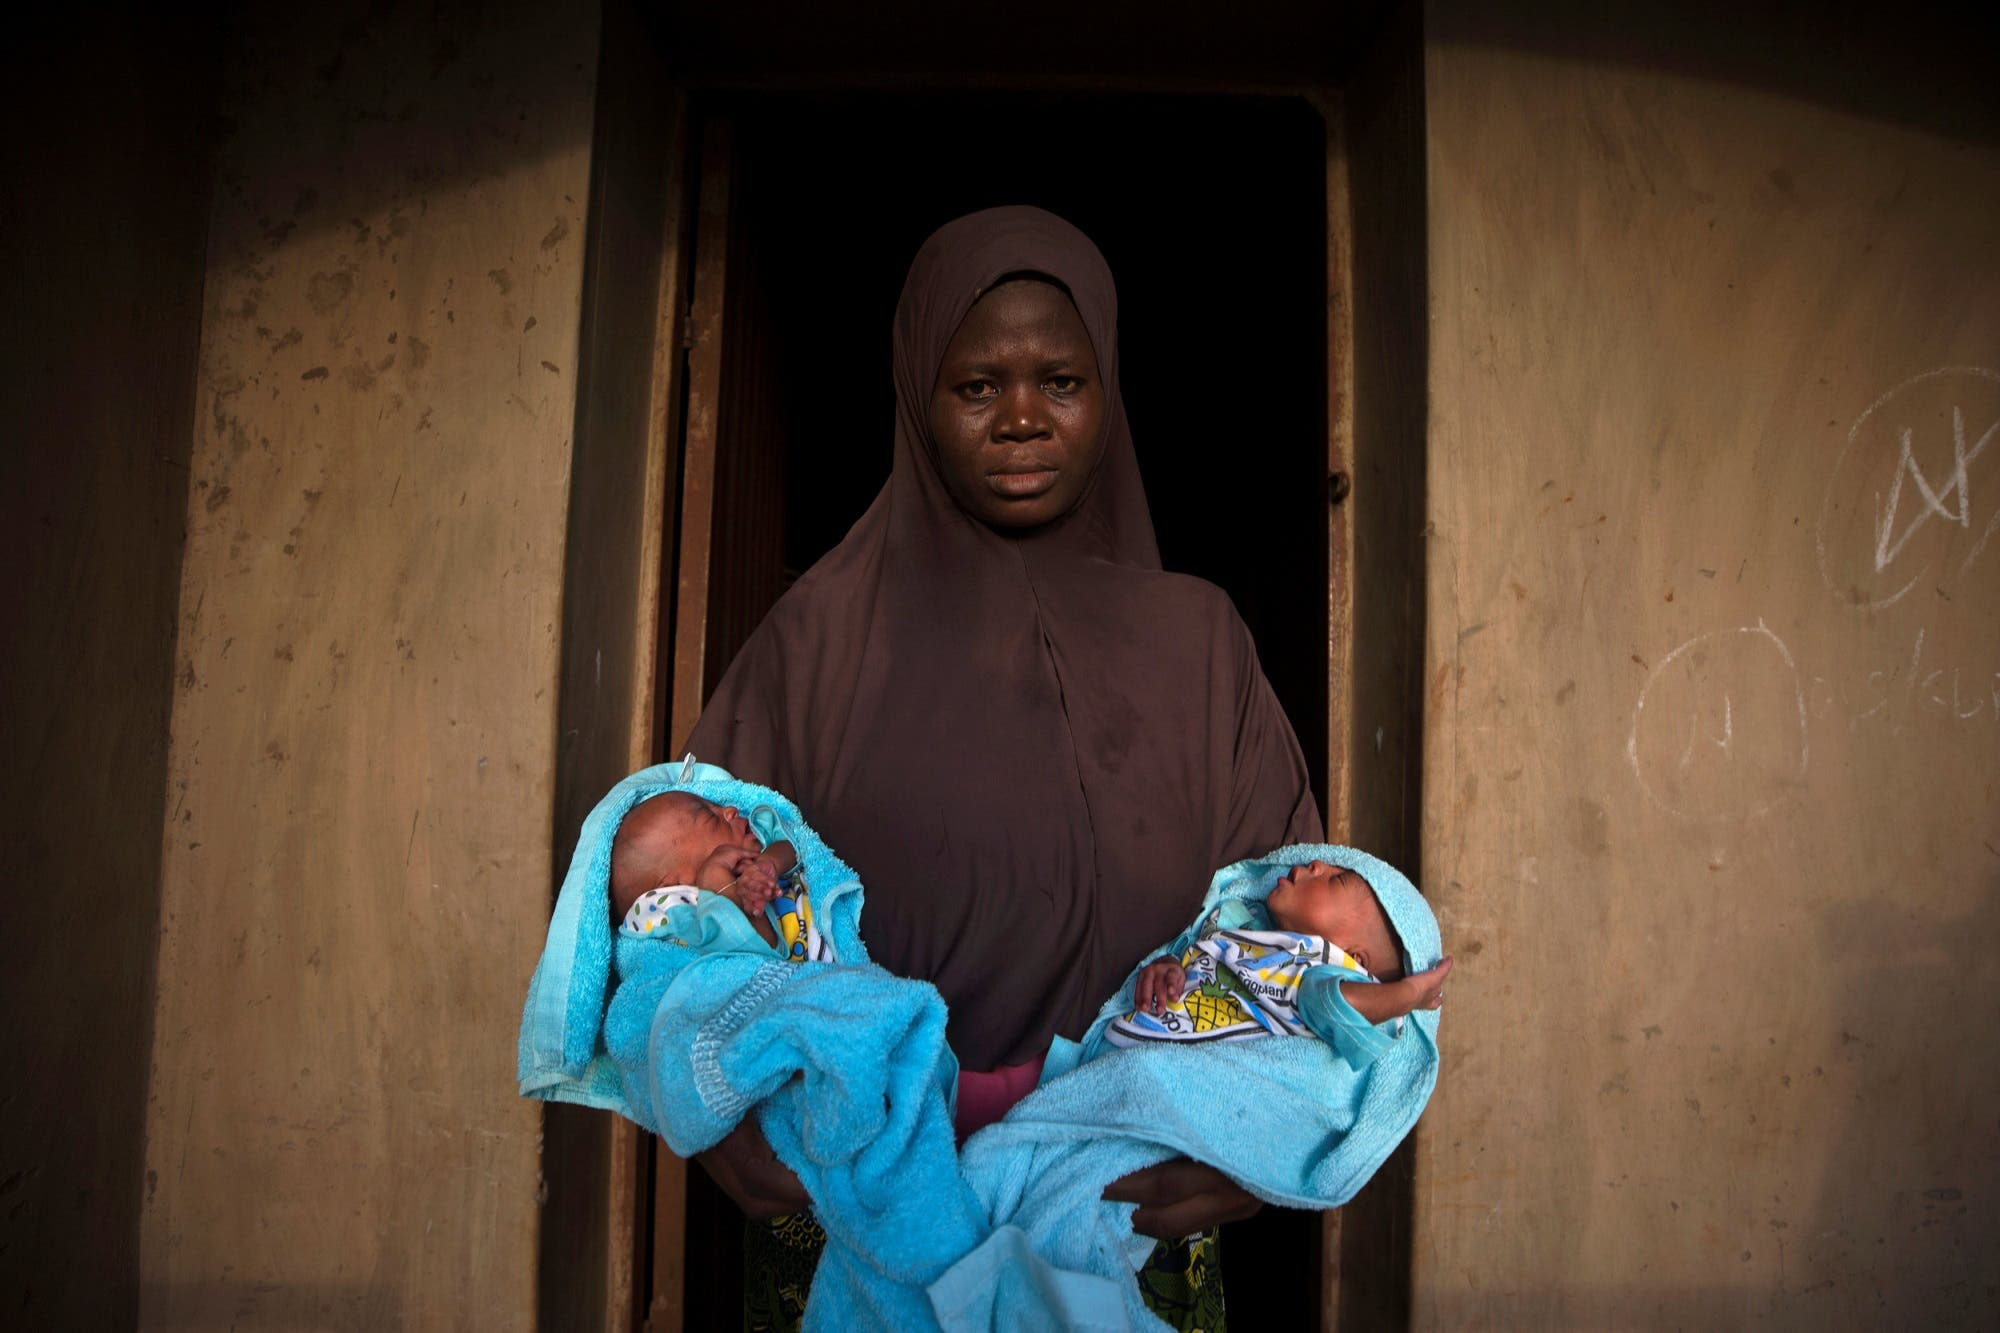 A Muslim woman carries her four-day-old male twins outside her home in Igbo Ora, Oyo State, Nigeria on April 3, 2019. (Reuters)